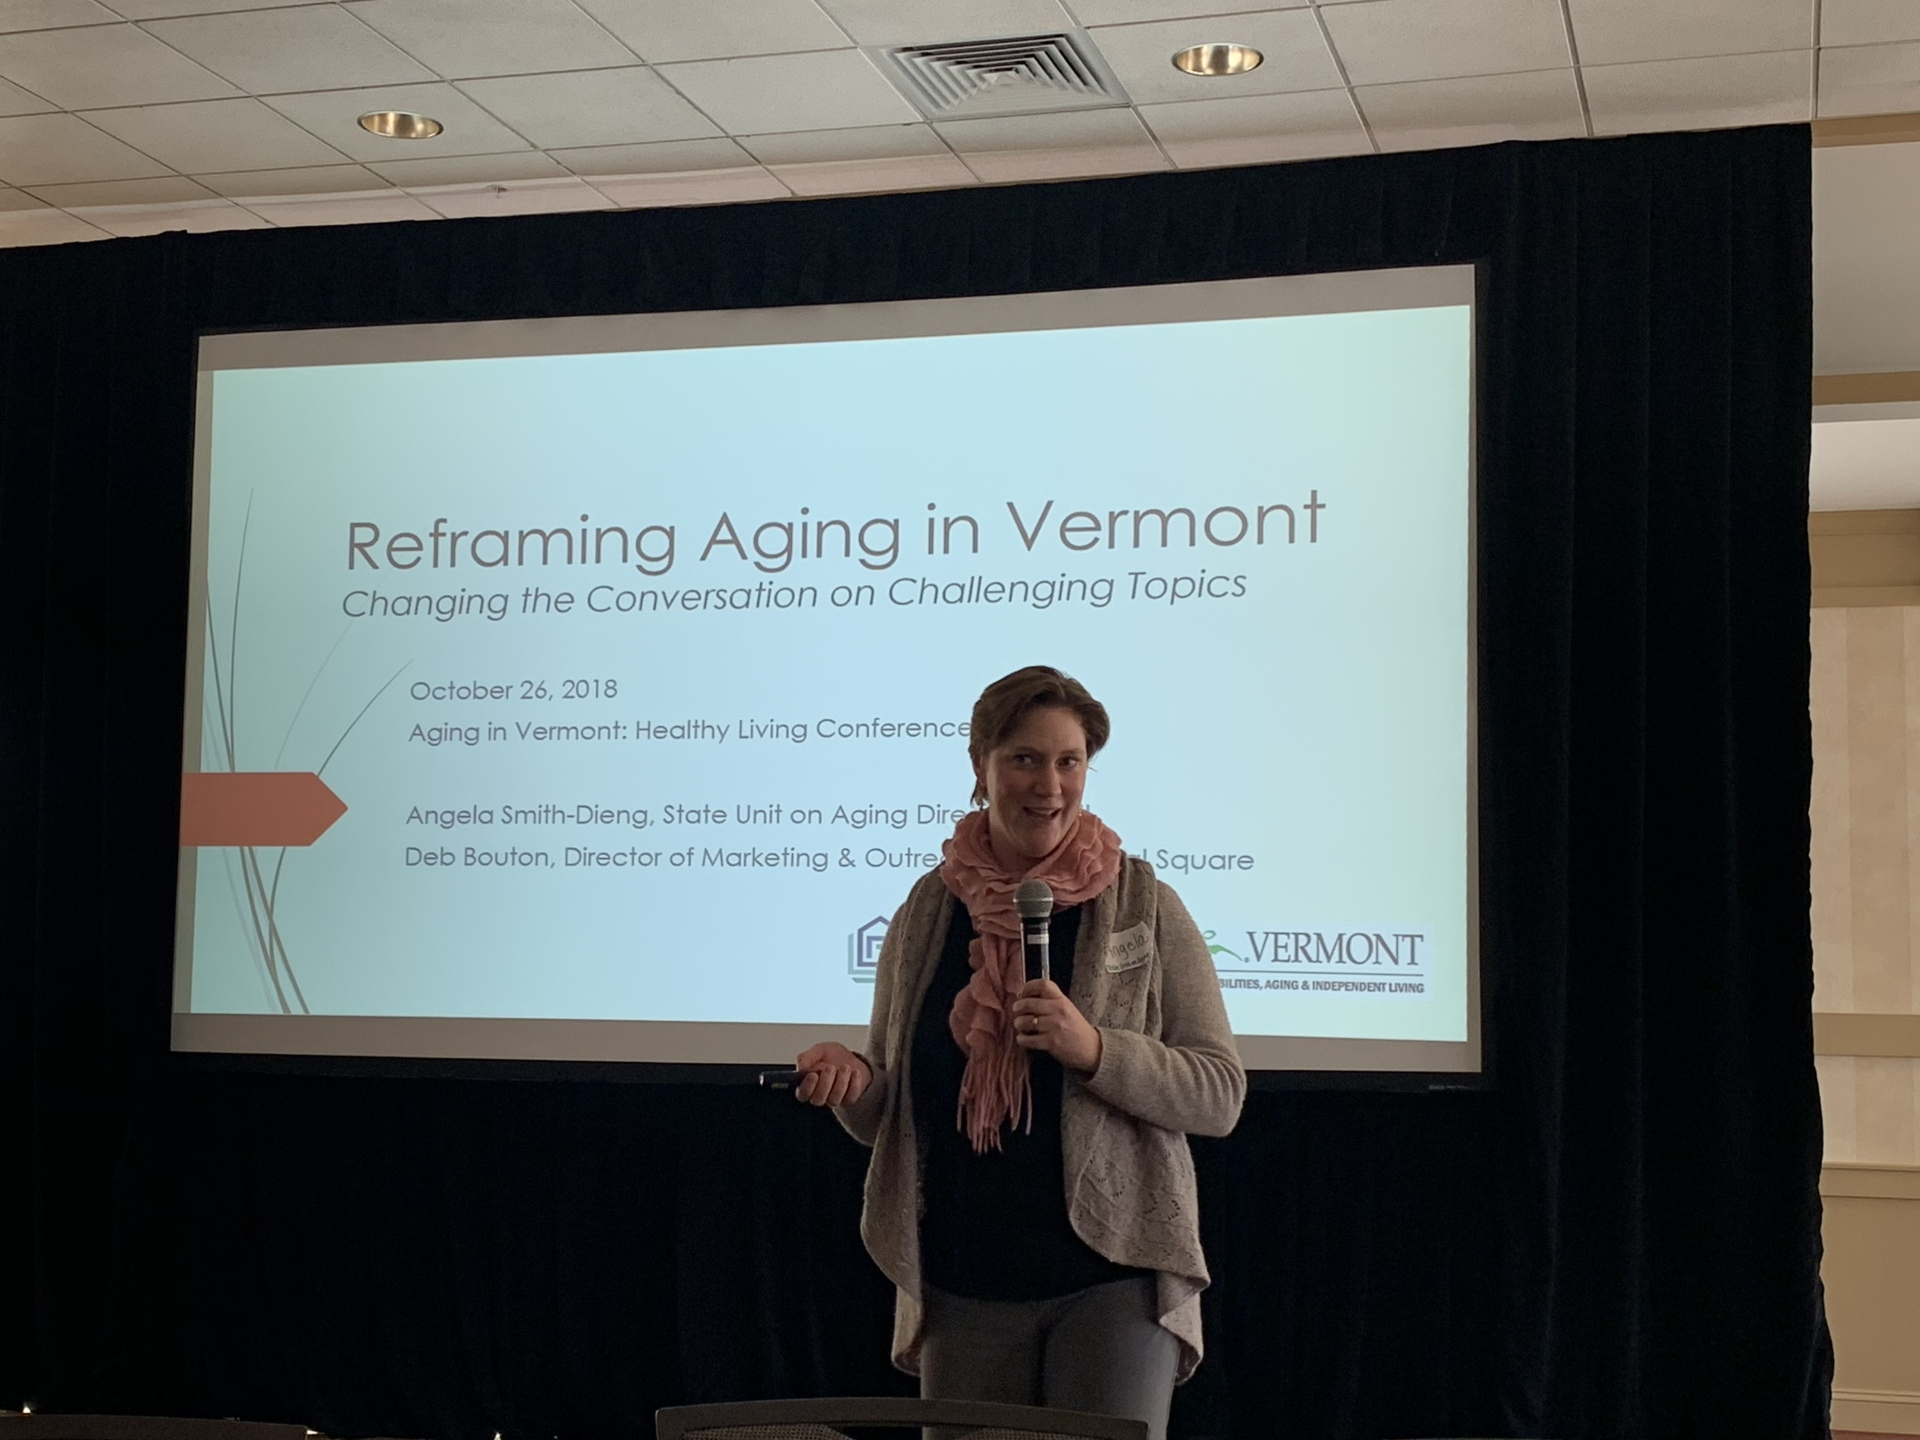 Reframing Aging Break-out Session, Angela Smith-Dieng